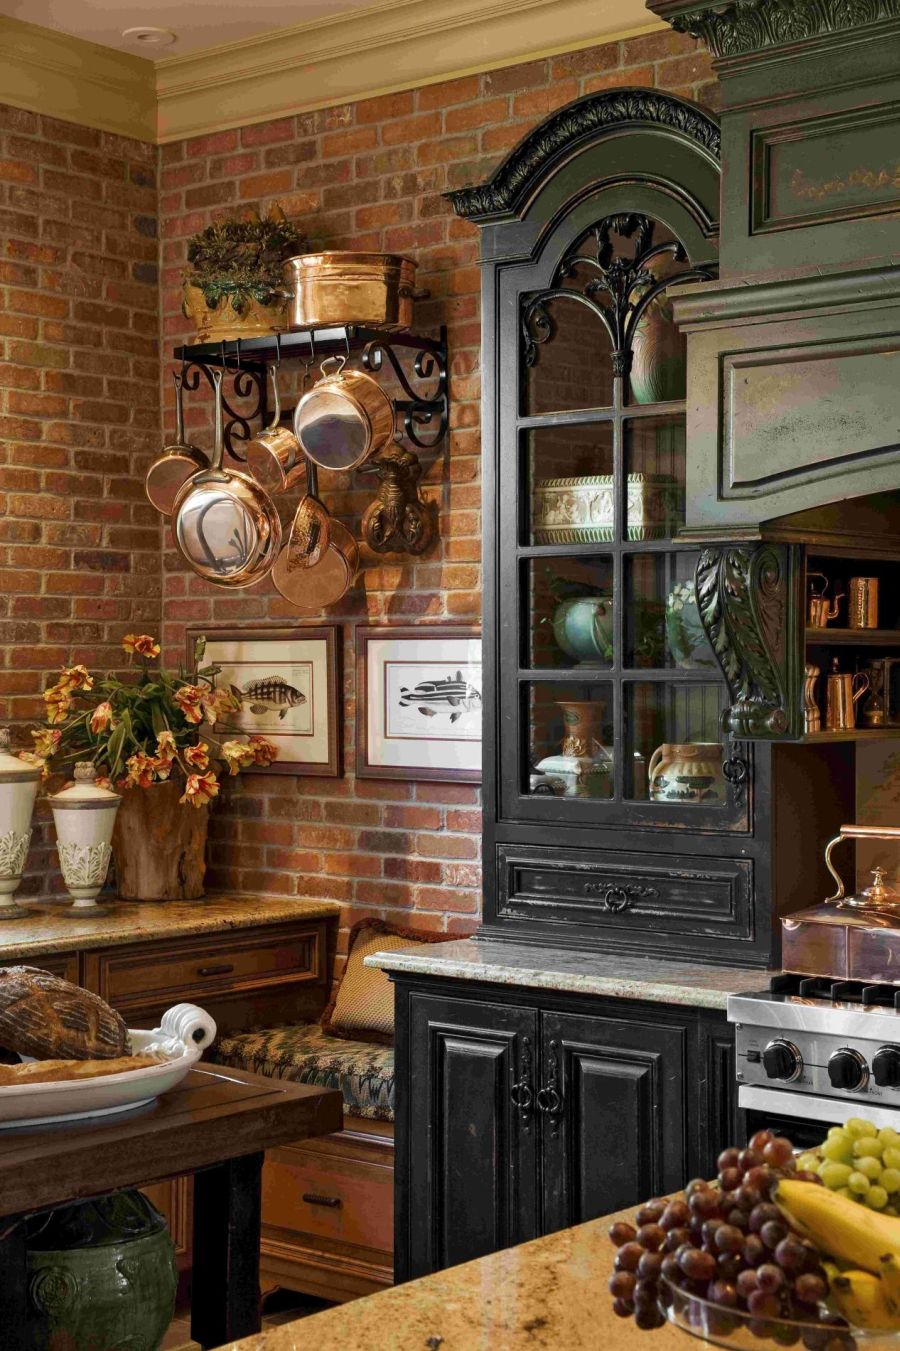 french country kitchen french country kitchen designs Home Decorating Trends Homedit